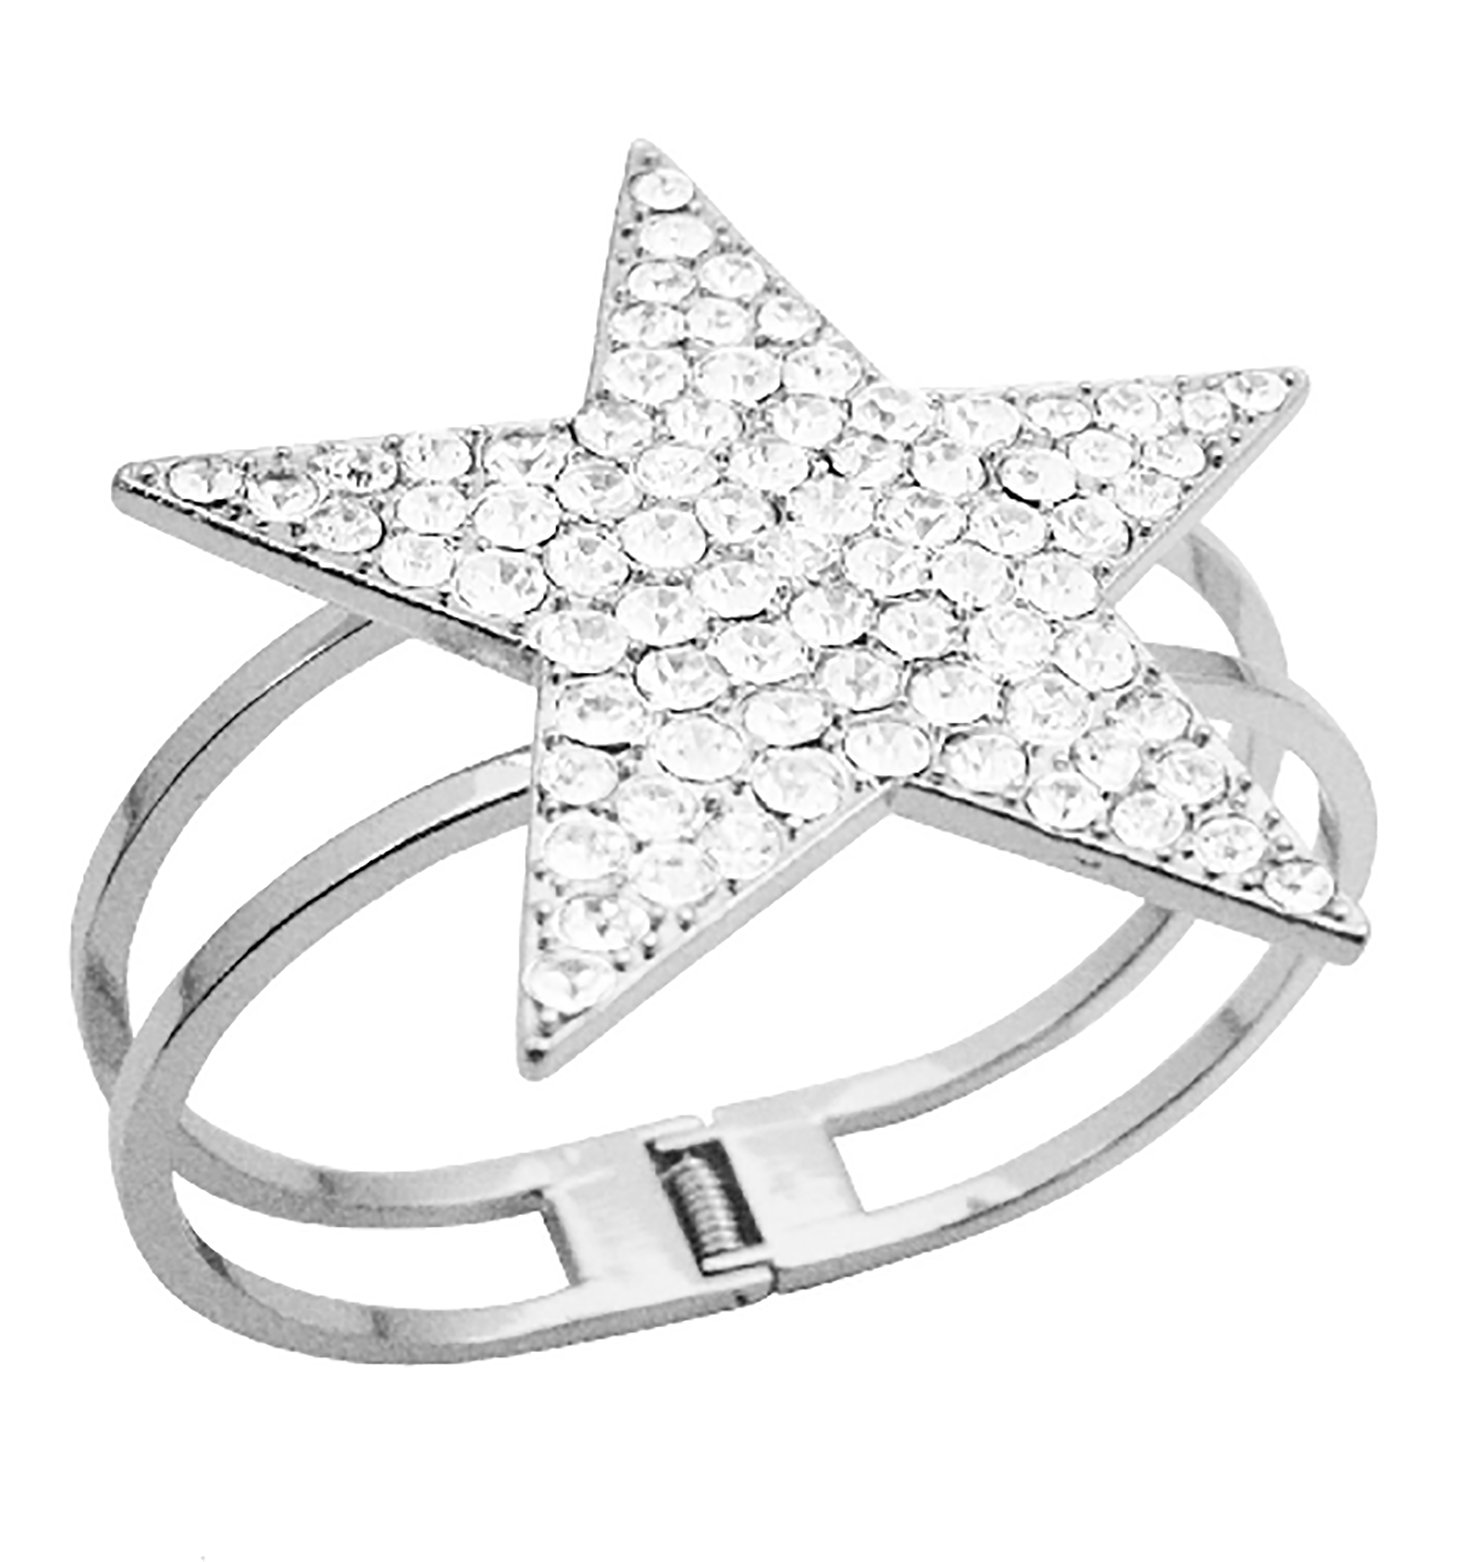 Star Power Cuff Bracelet - filthy-rich-vision